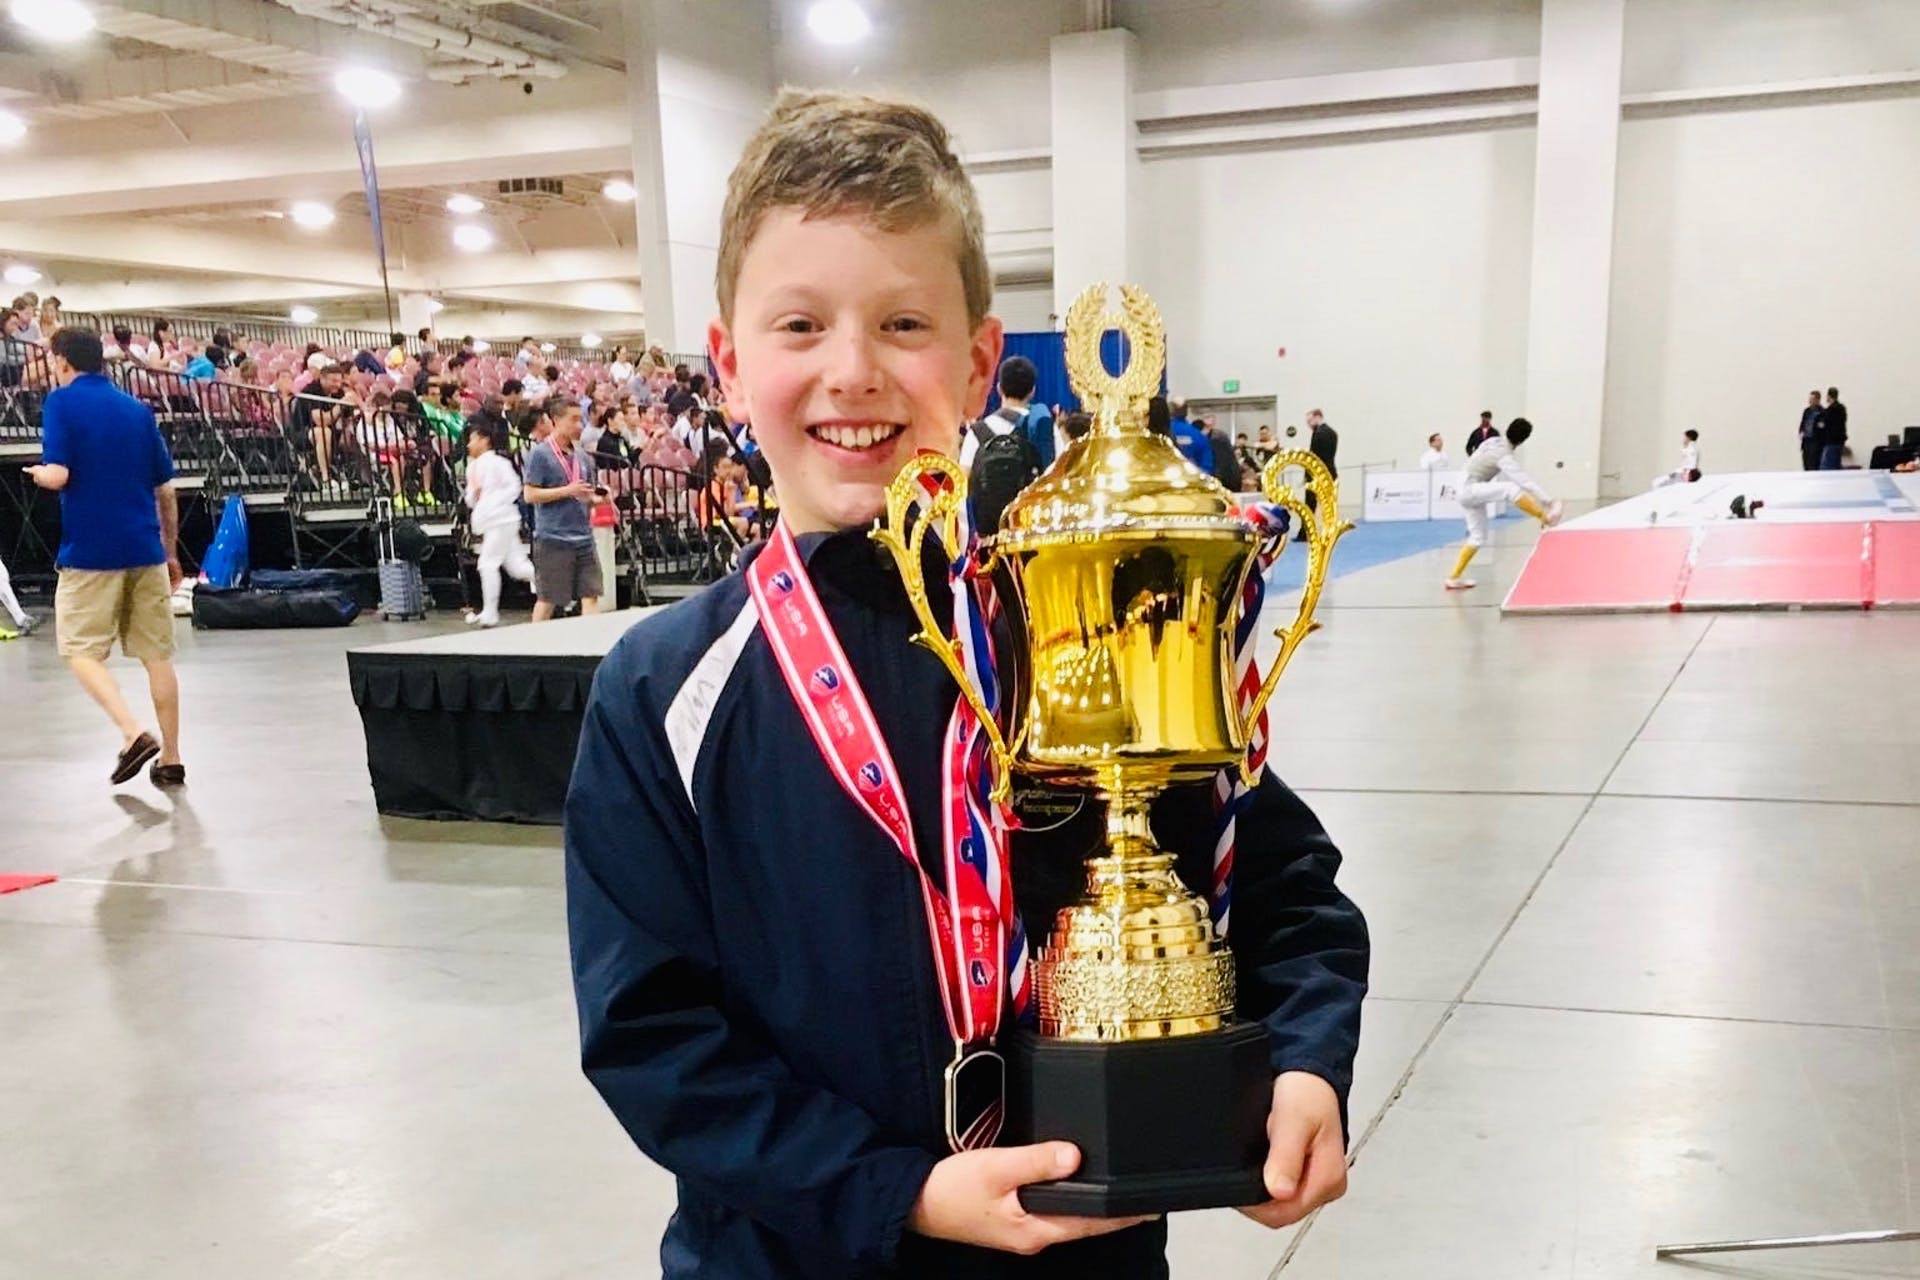 Dynamo the fistr Youth National Champion! Eddie Maklin was unstopable to a gold medal in the last day of 2017 Summer National Championship in Salt Lake City, Utah. Shoutout to Eddie, Coach, parents and the whole Dynamo team for support!  Boston strong! Go Dynamo! S